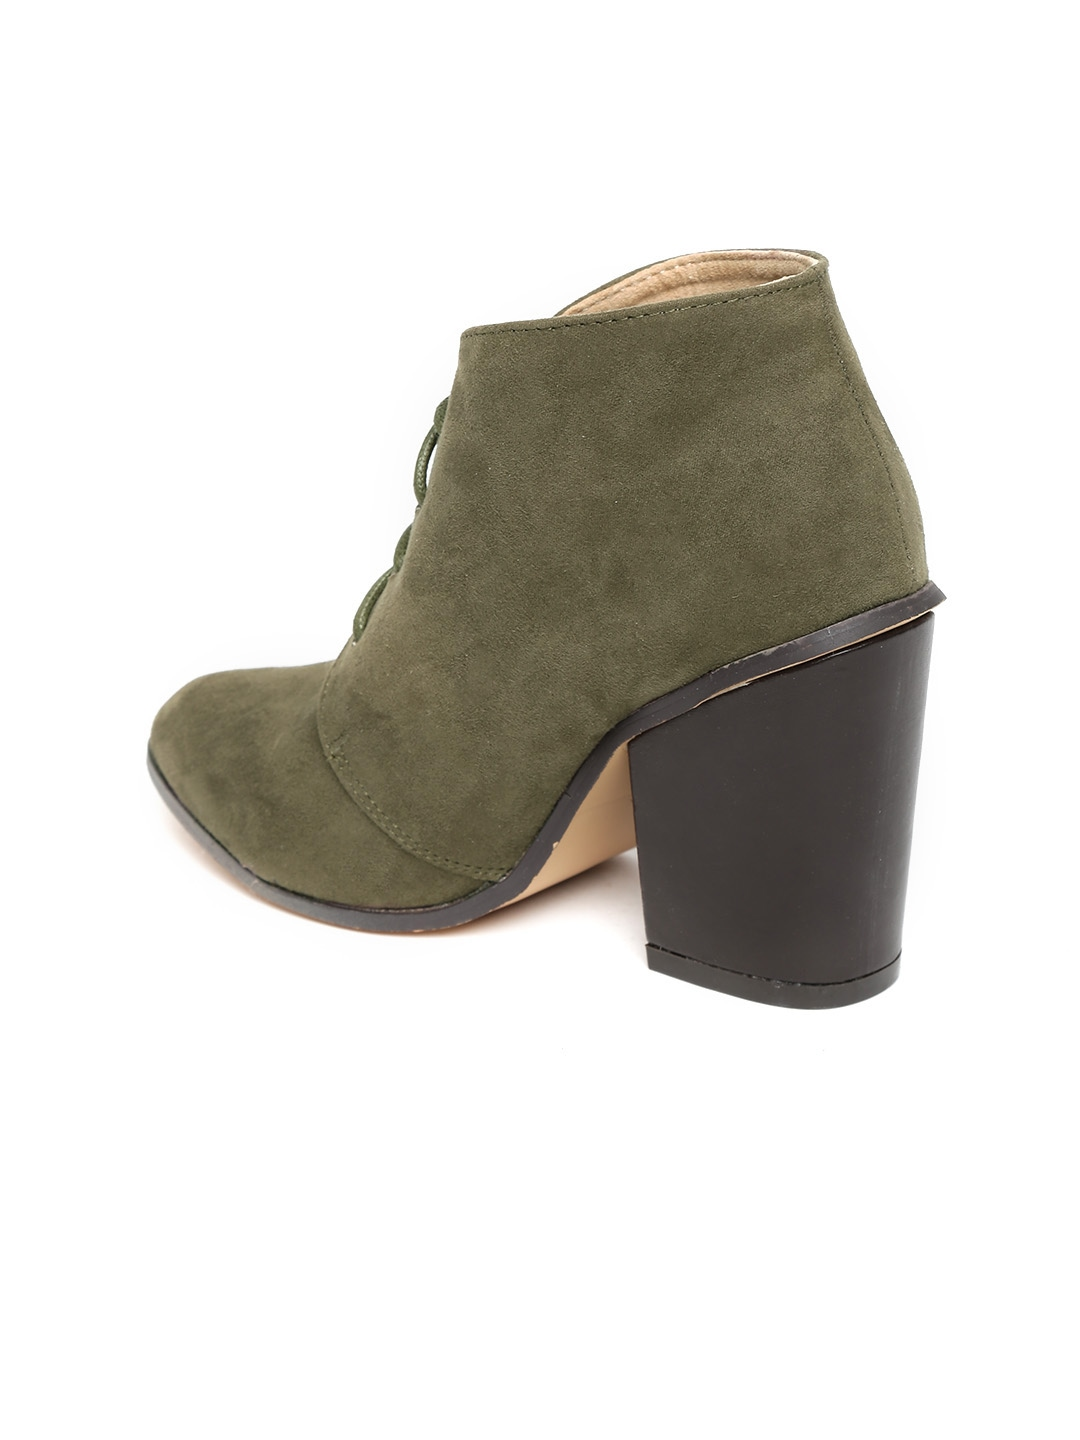 myntra carlton olive green suede heeled boots